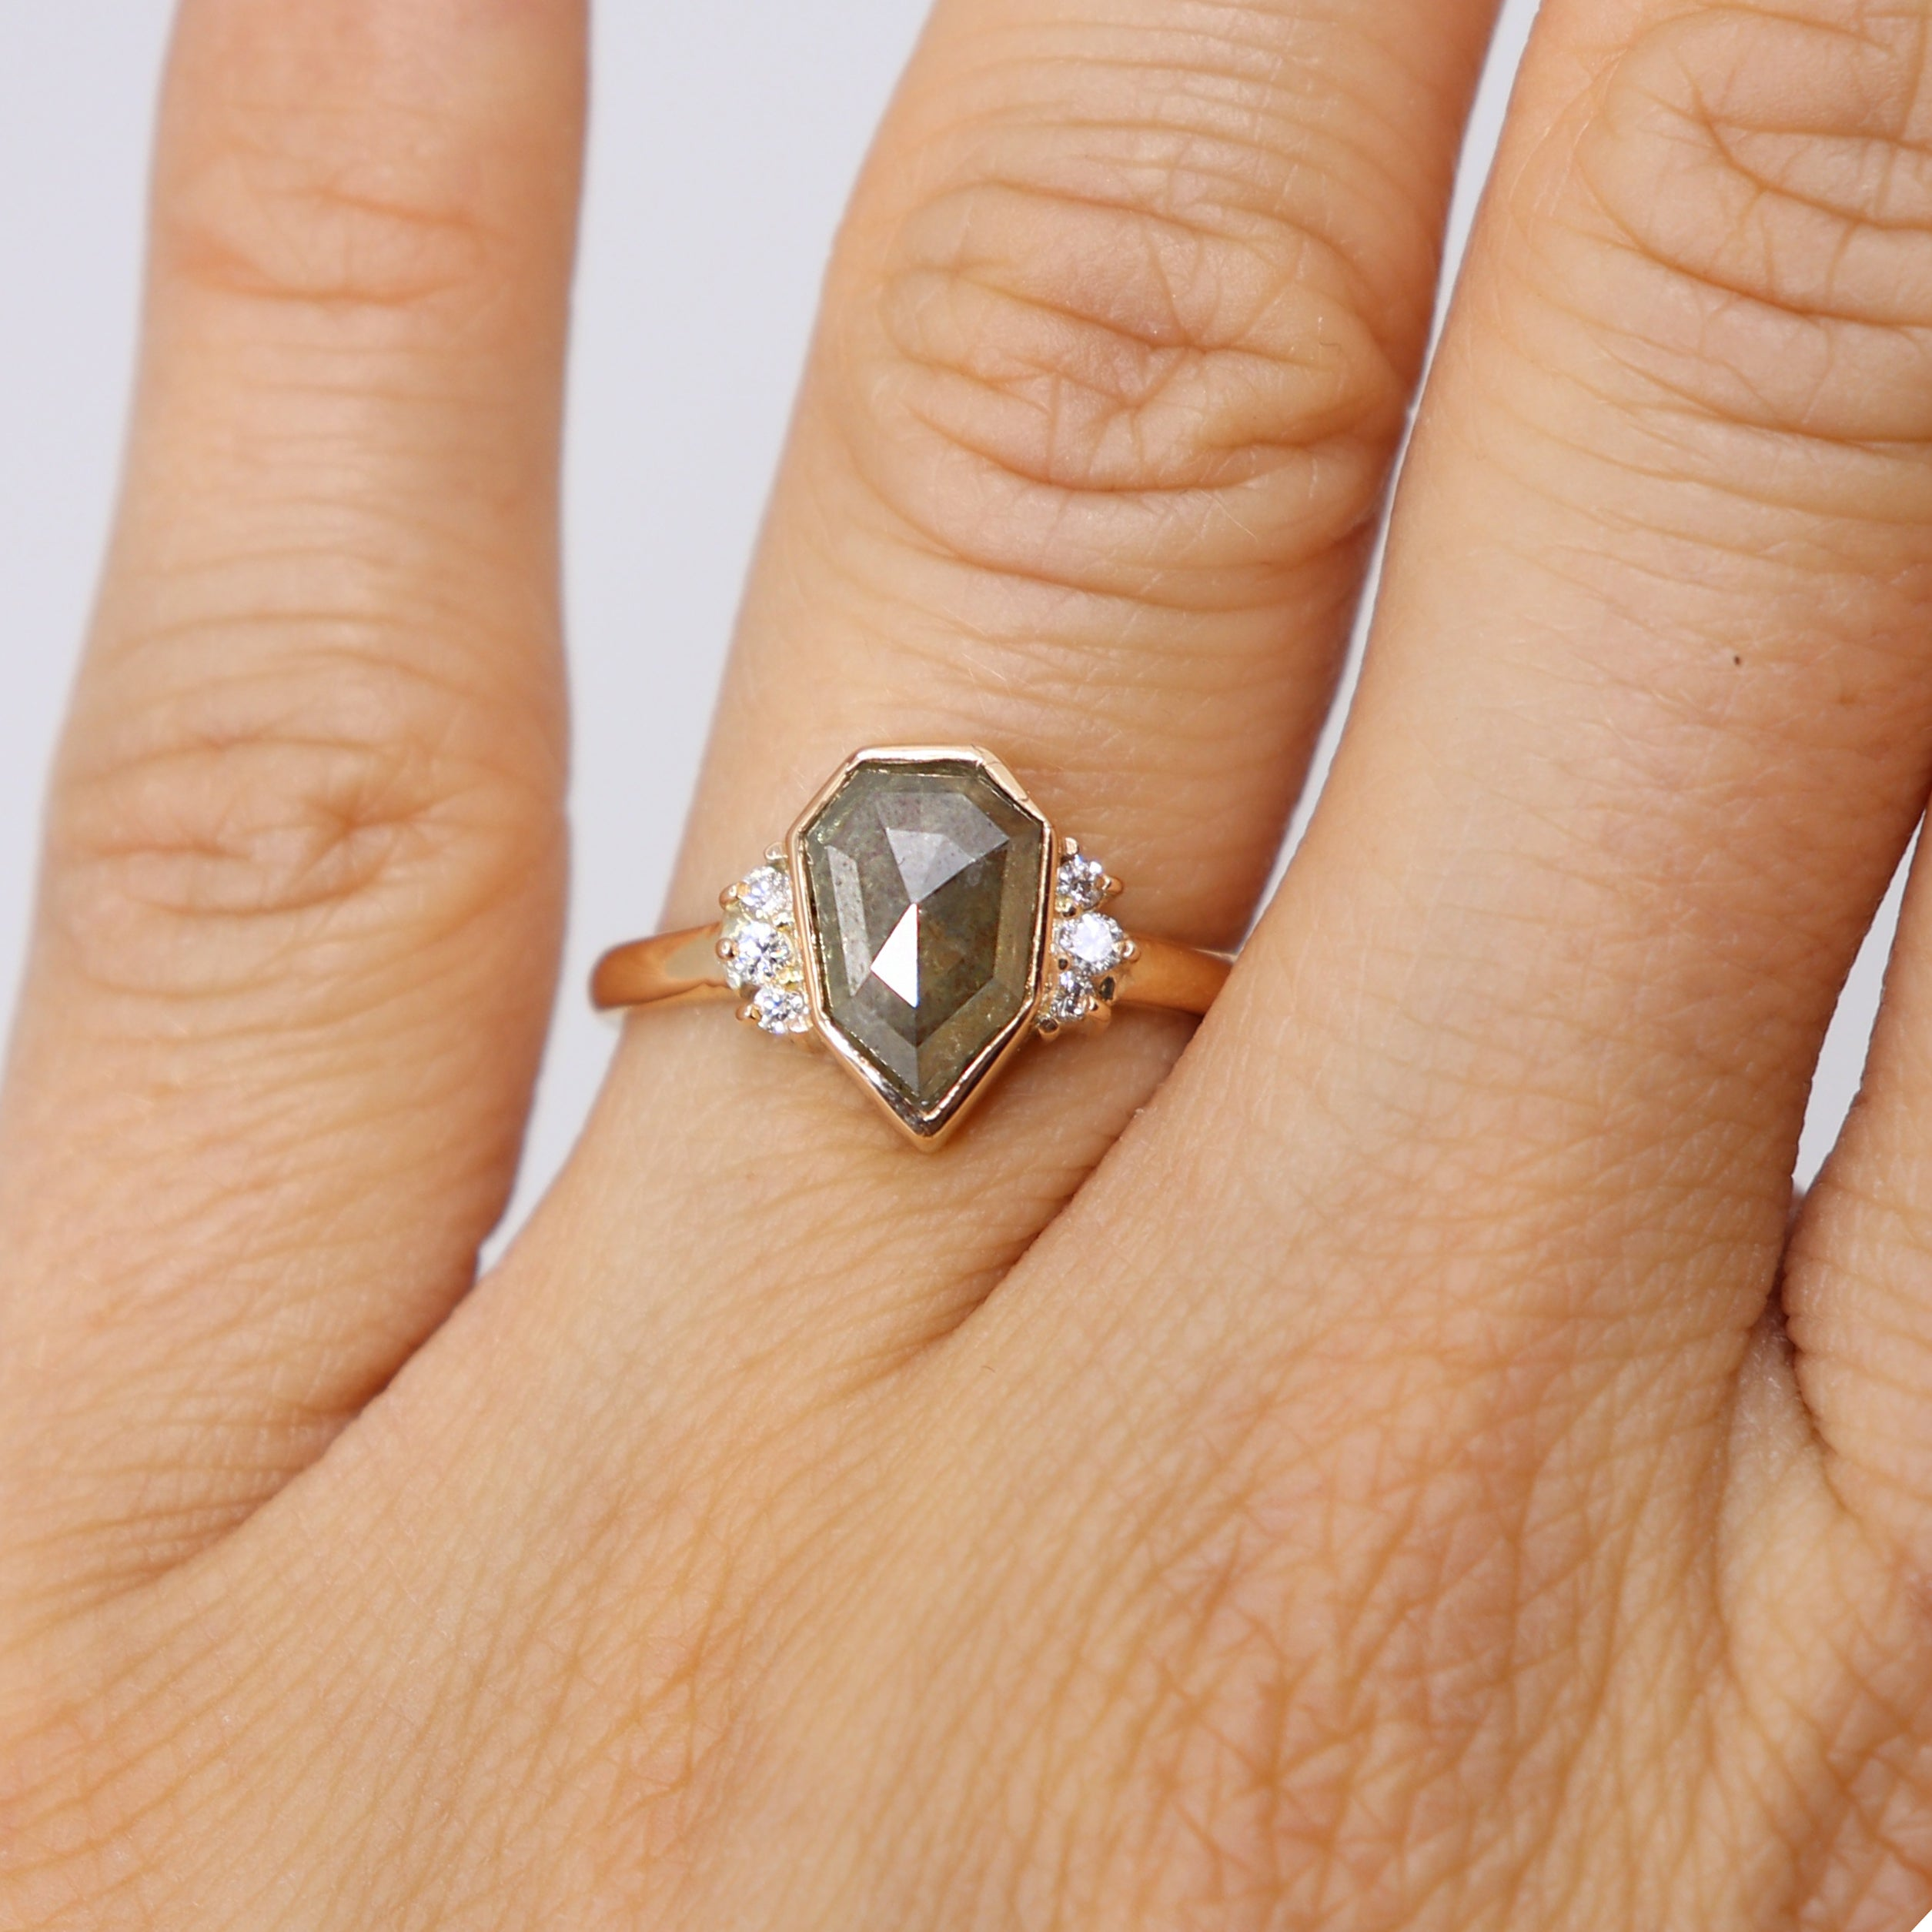 Celestial Ring - Heptagon grey diamond